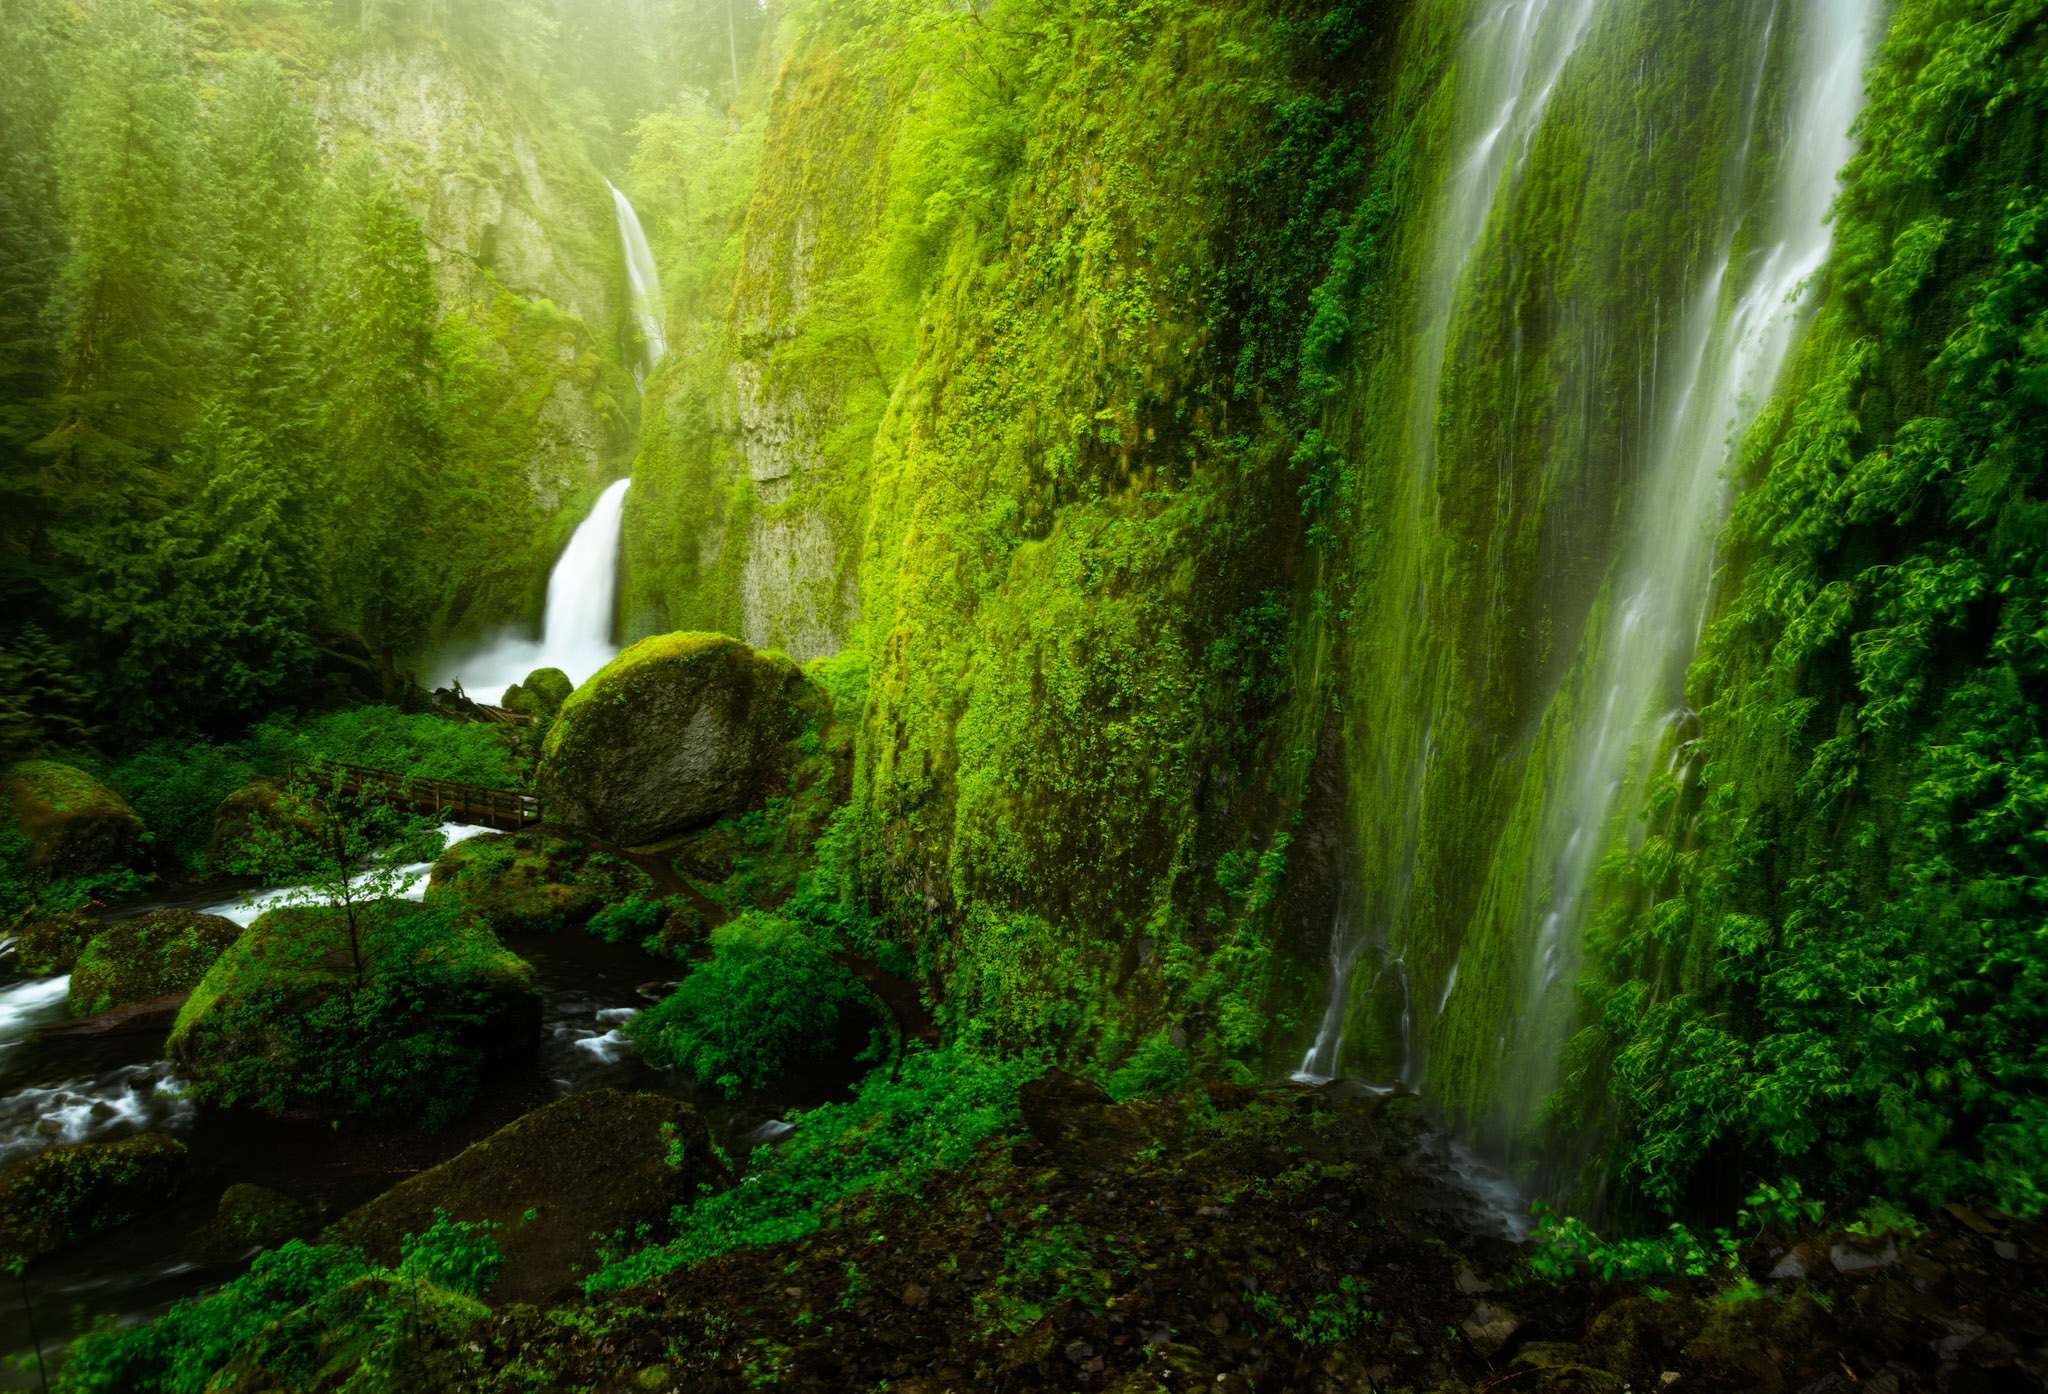 A waterfall in a lush green landscape.